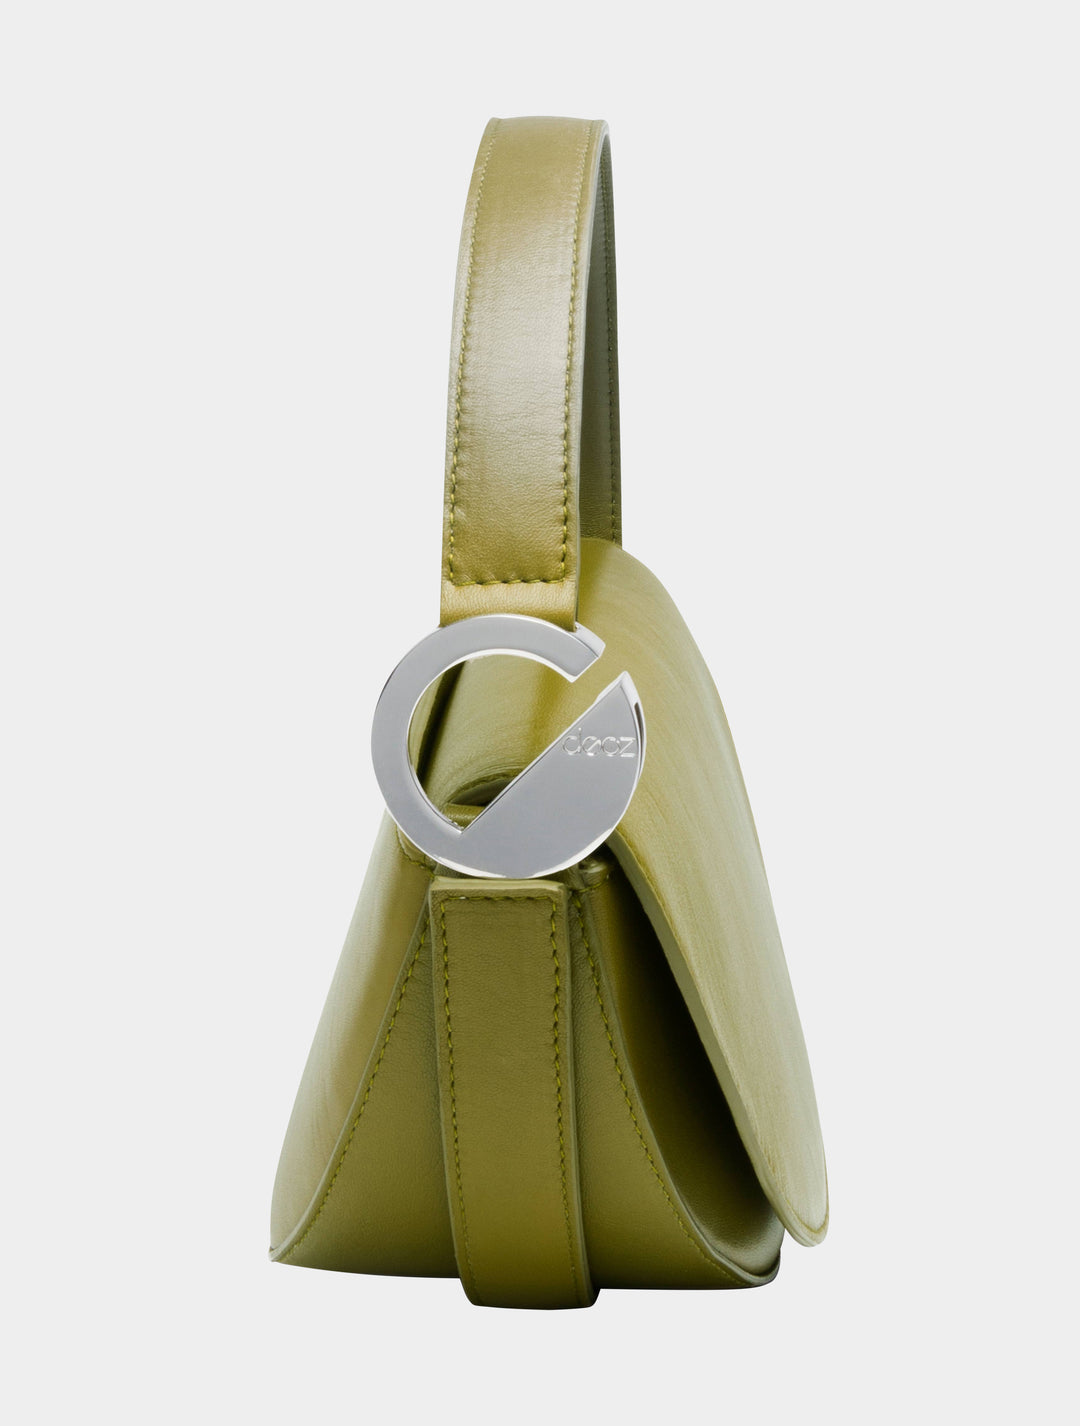 Capricorn Celeste Bag, Side View